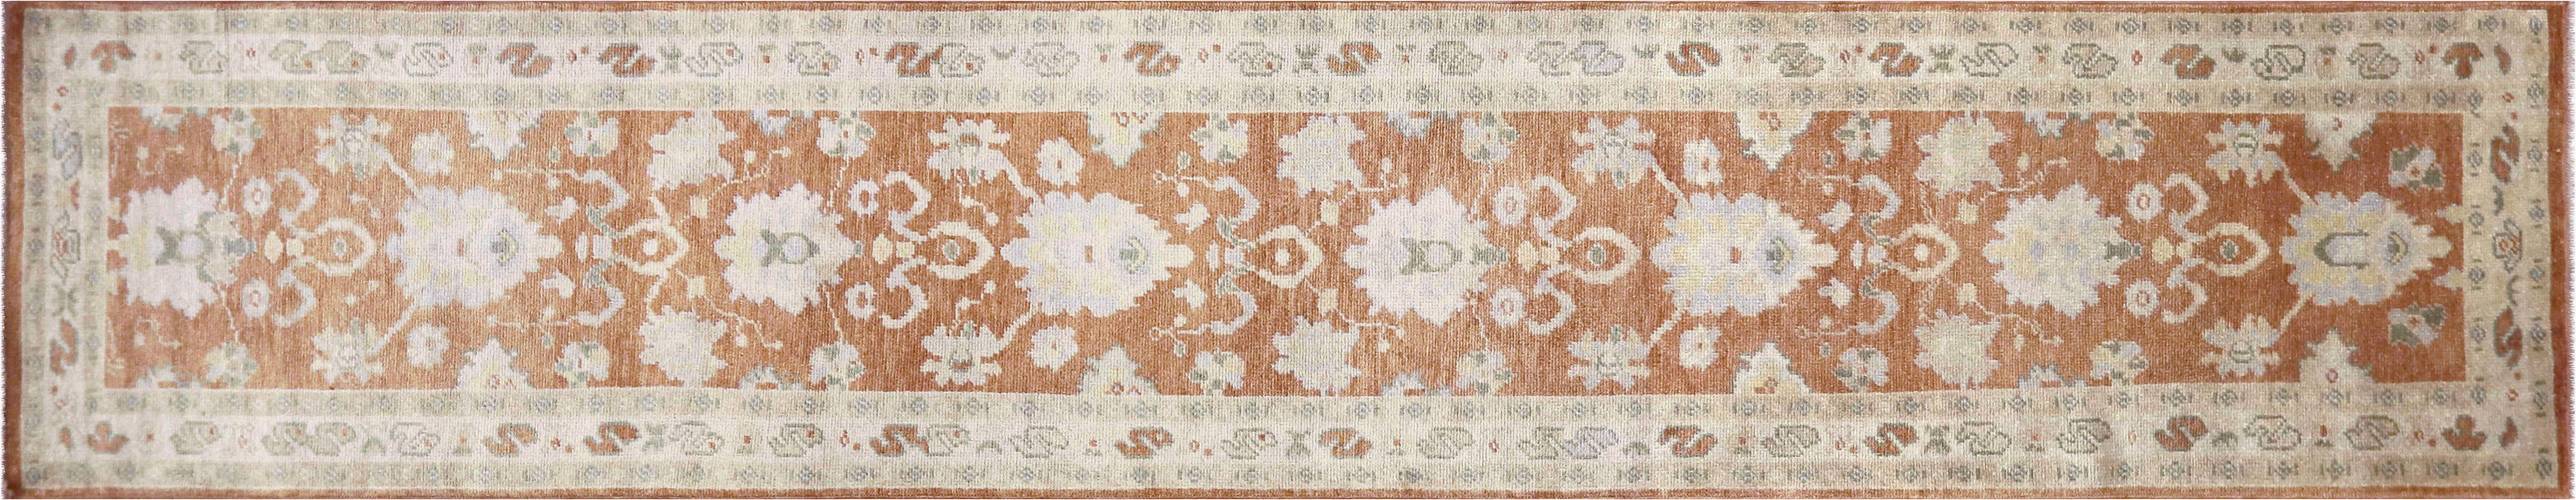 "Recently Woven Turkish Oushak Runner - 2'9"" x 14'1"""